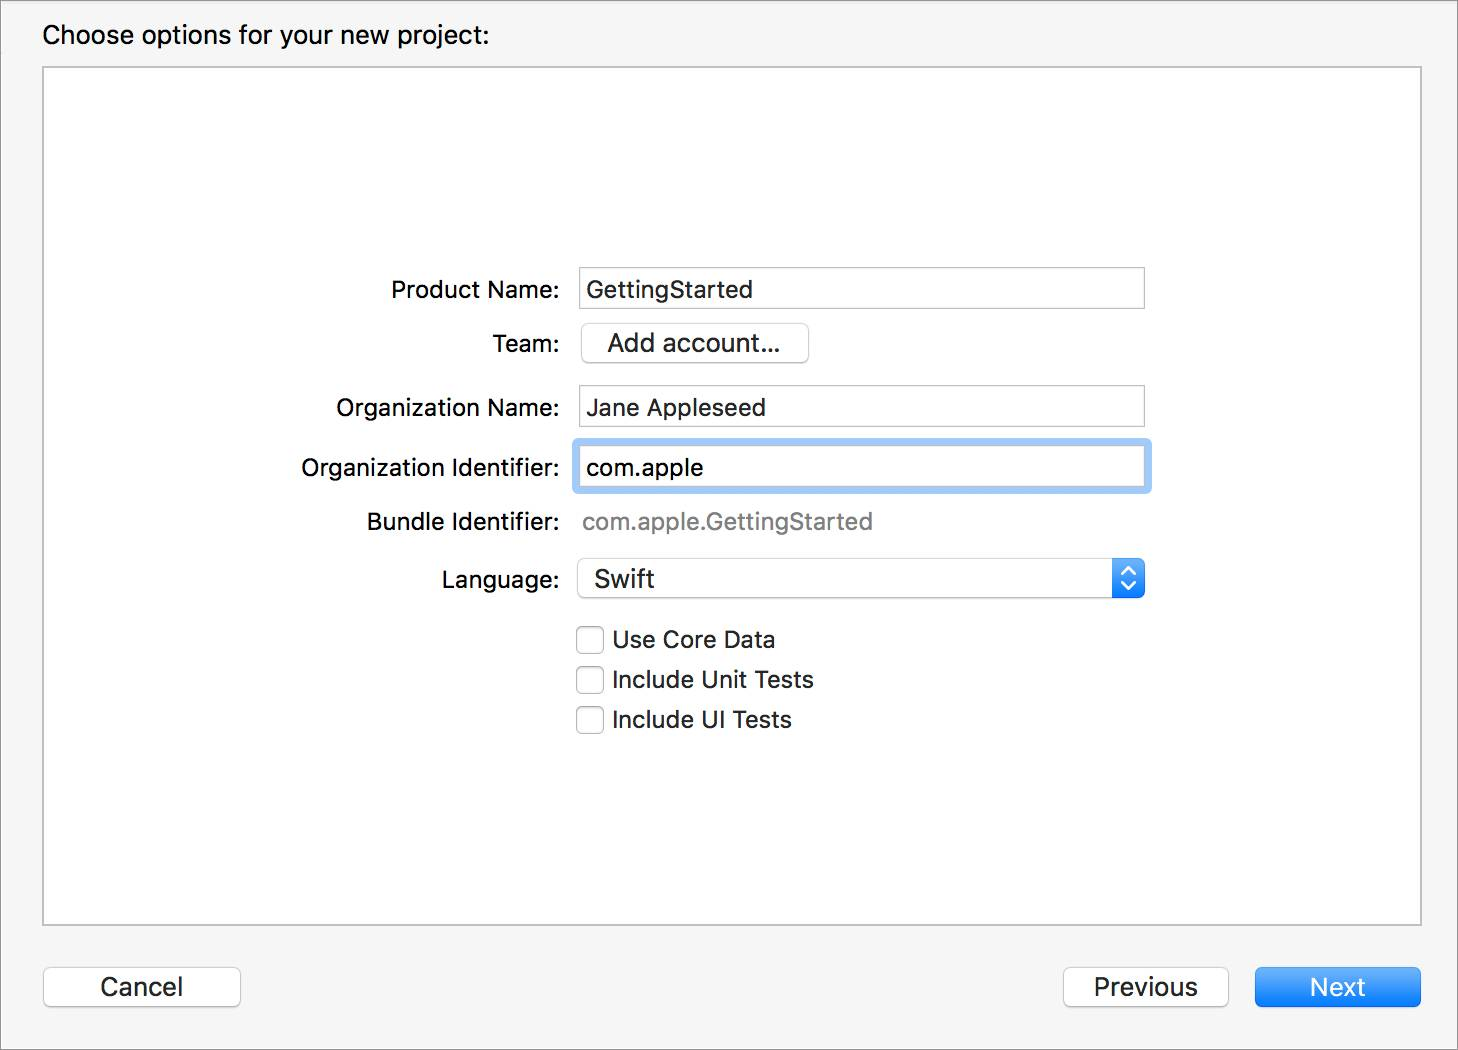 The Choose options for your new project screen with the Organization Identifier field highlighted.